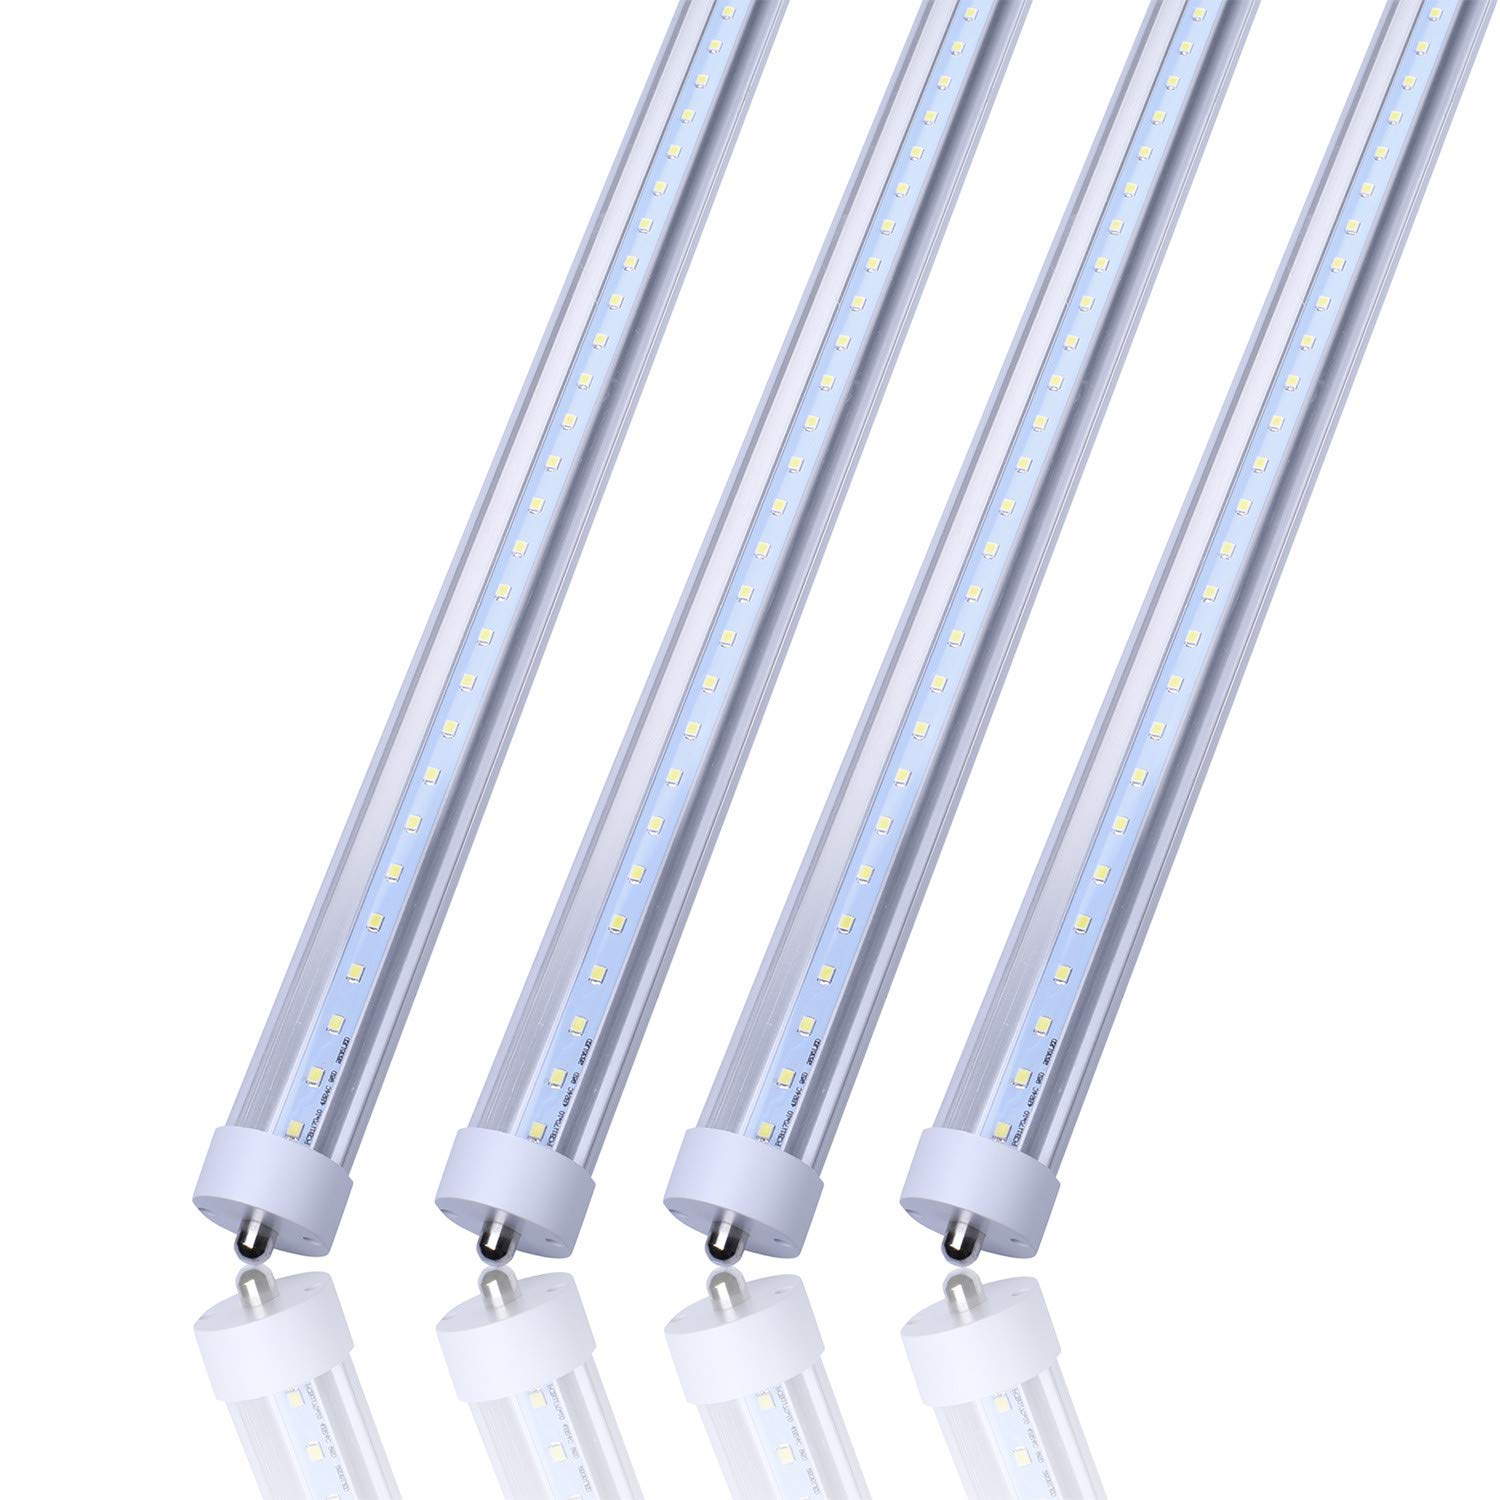 8FT T8 FA8 5000K LED Light Tube 45W Replacement 100W Fluorescent Lamp Shop Light Bulb, Single Pin FA8 Base Dual-Ended Power Cold White Clear Cover, AC 85-265V 4 Pack